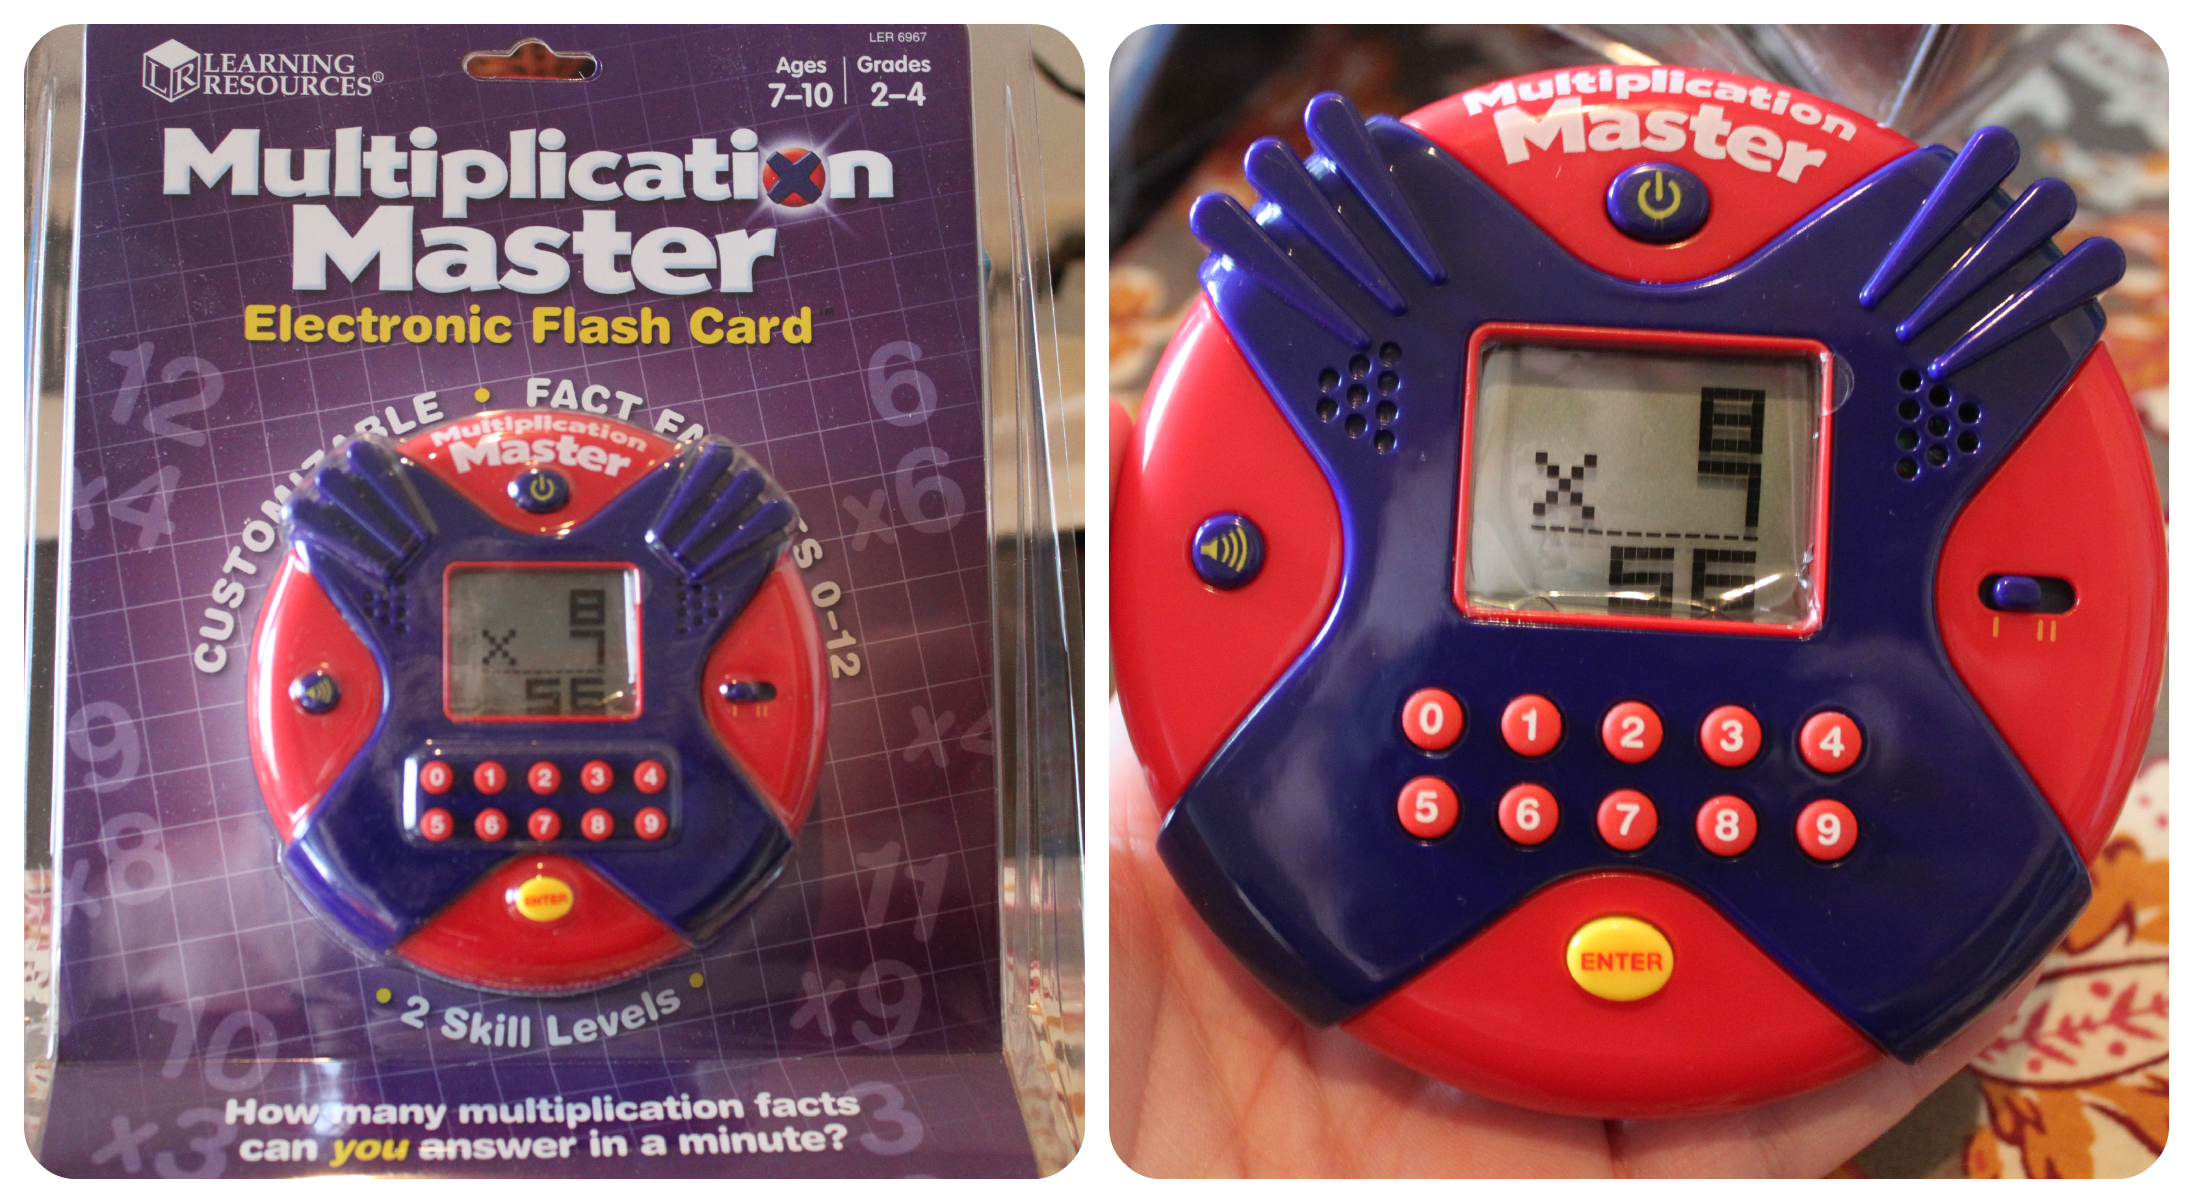 Learning Resources: Multiplication Master Electronic Flash